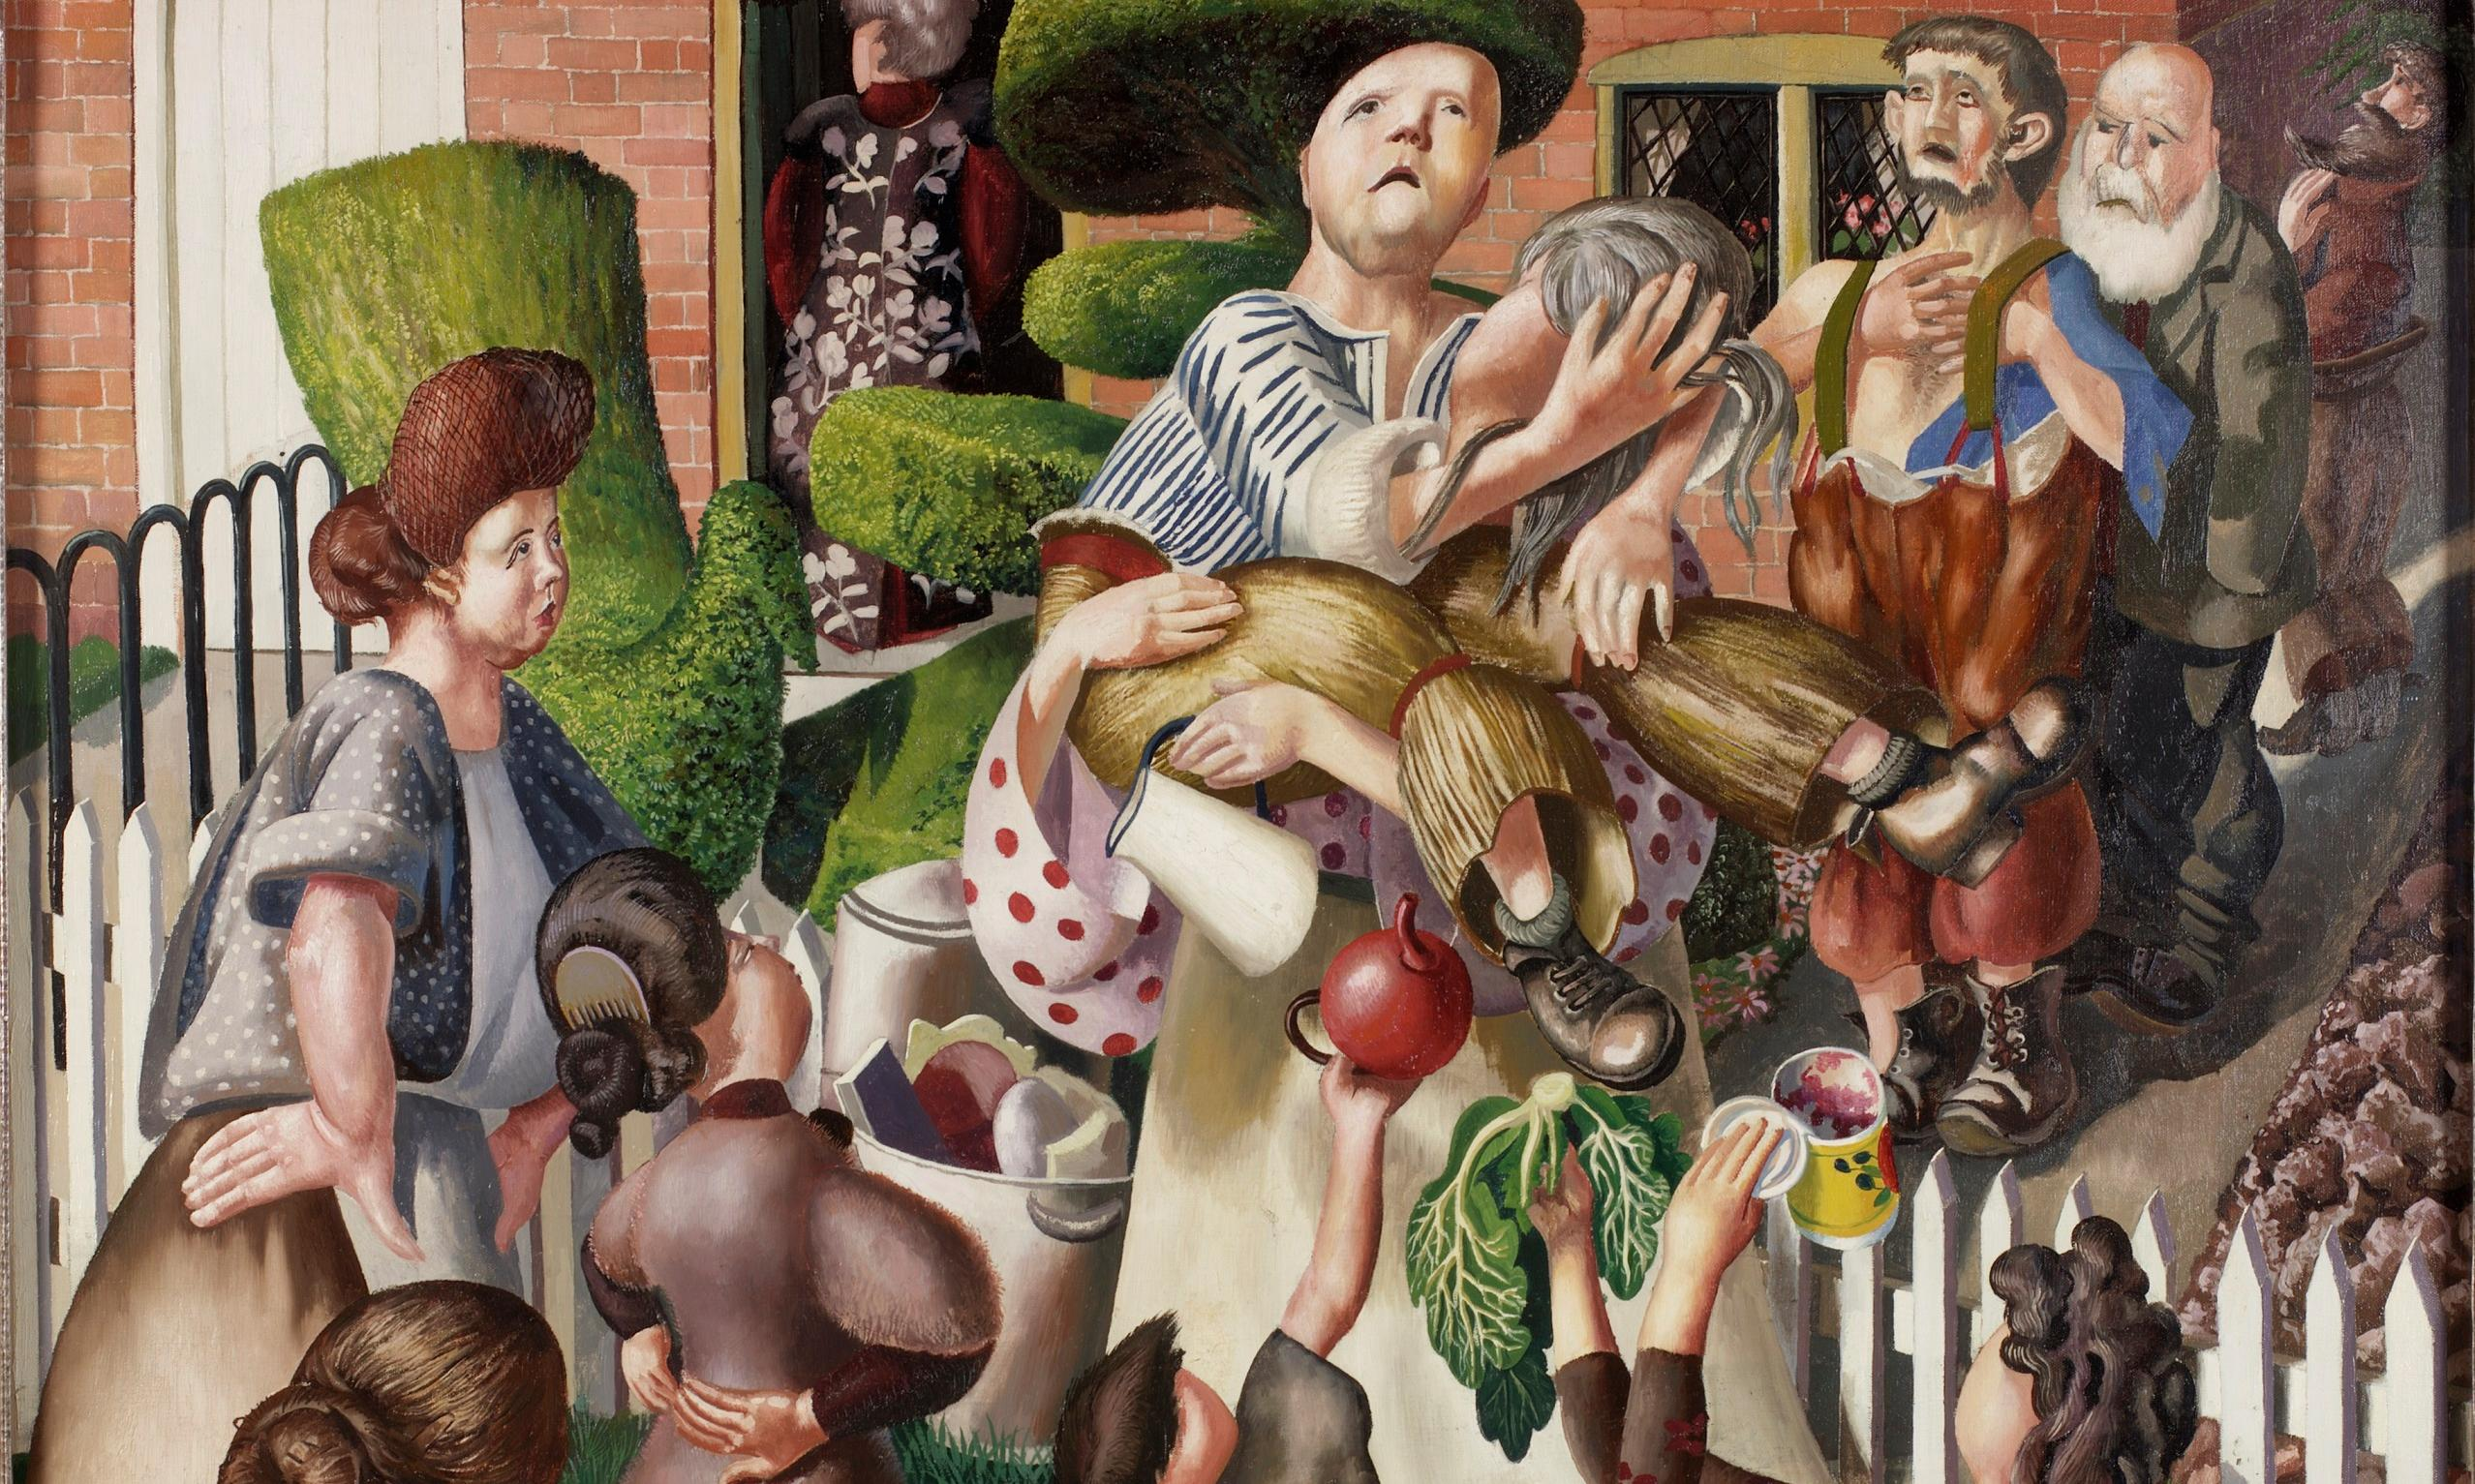 Stanley Spencer's The Dustman or The Lovers: a suburban fantasy